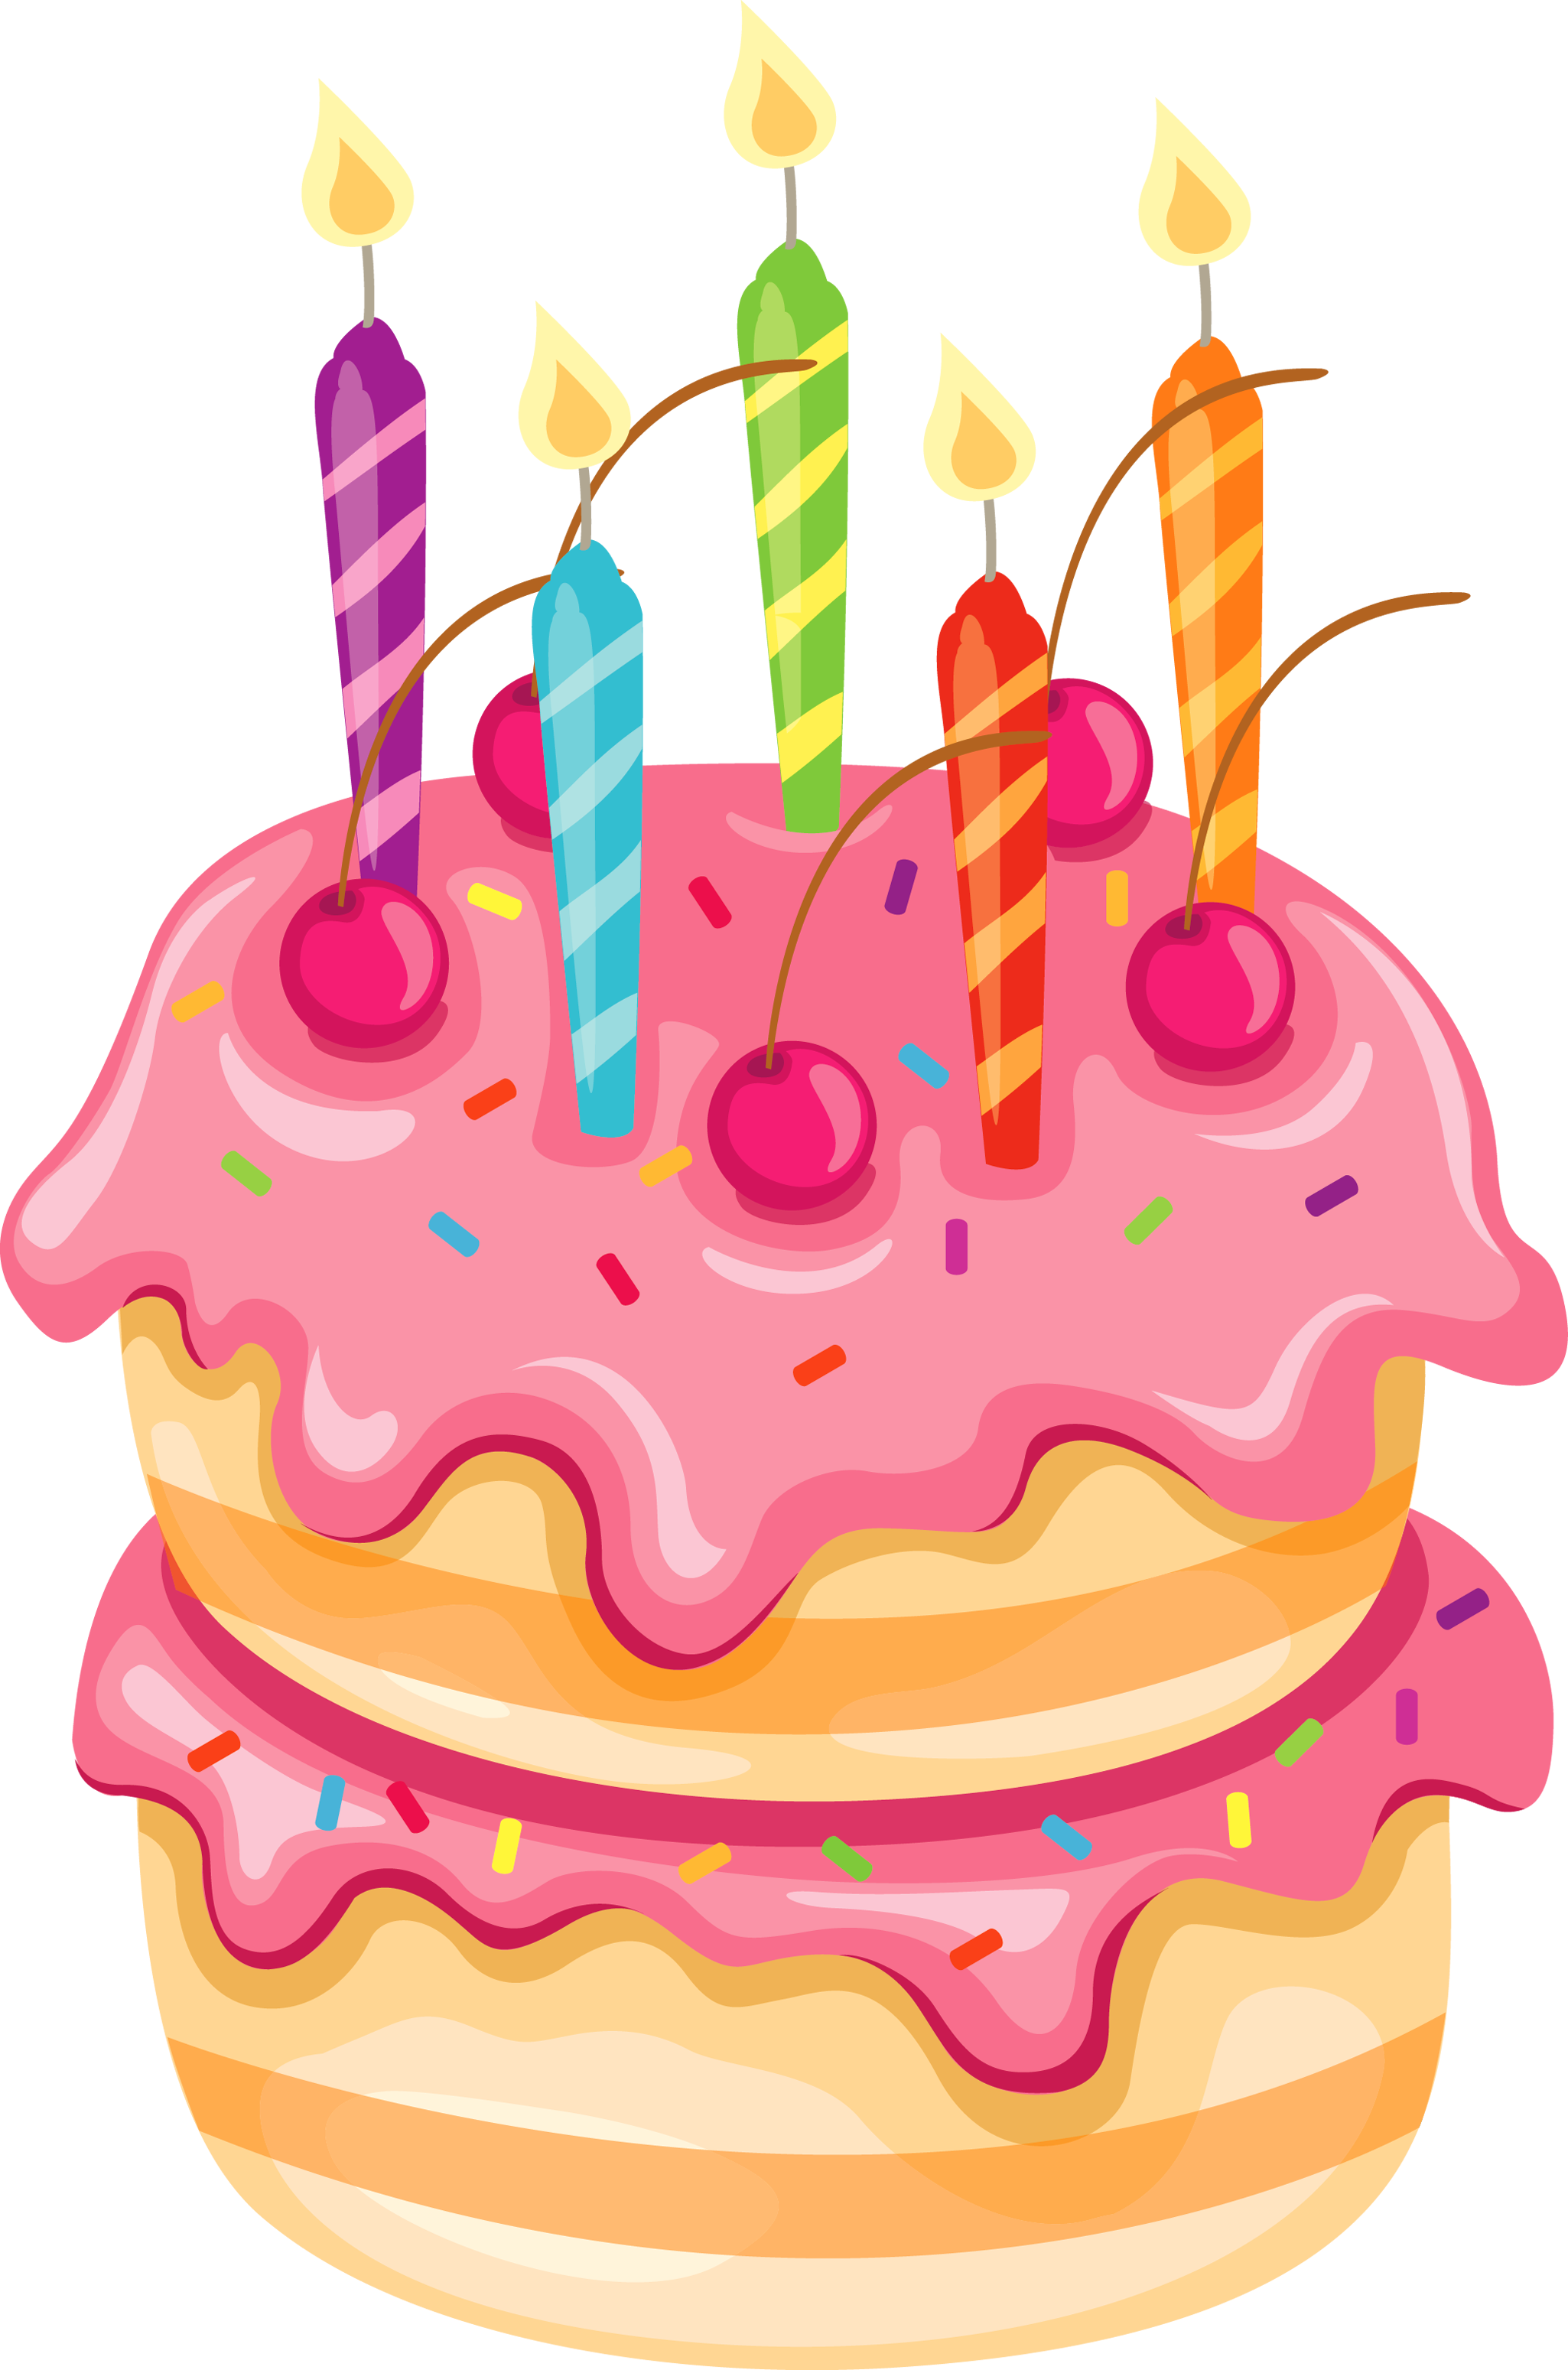 Pink clipart aniversaris pinterest. Happy birthday cake with 5 candles png clipart freeuse library